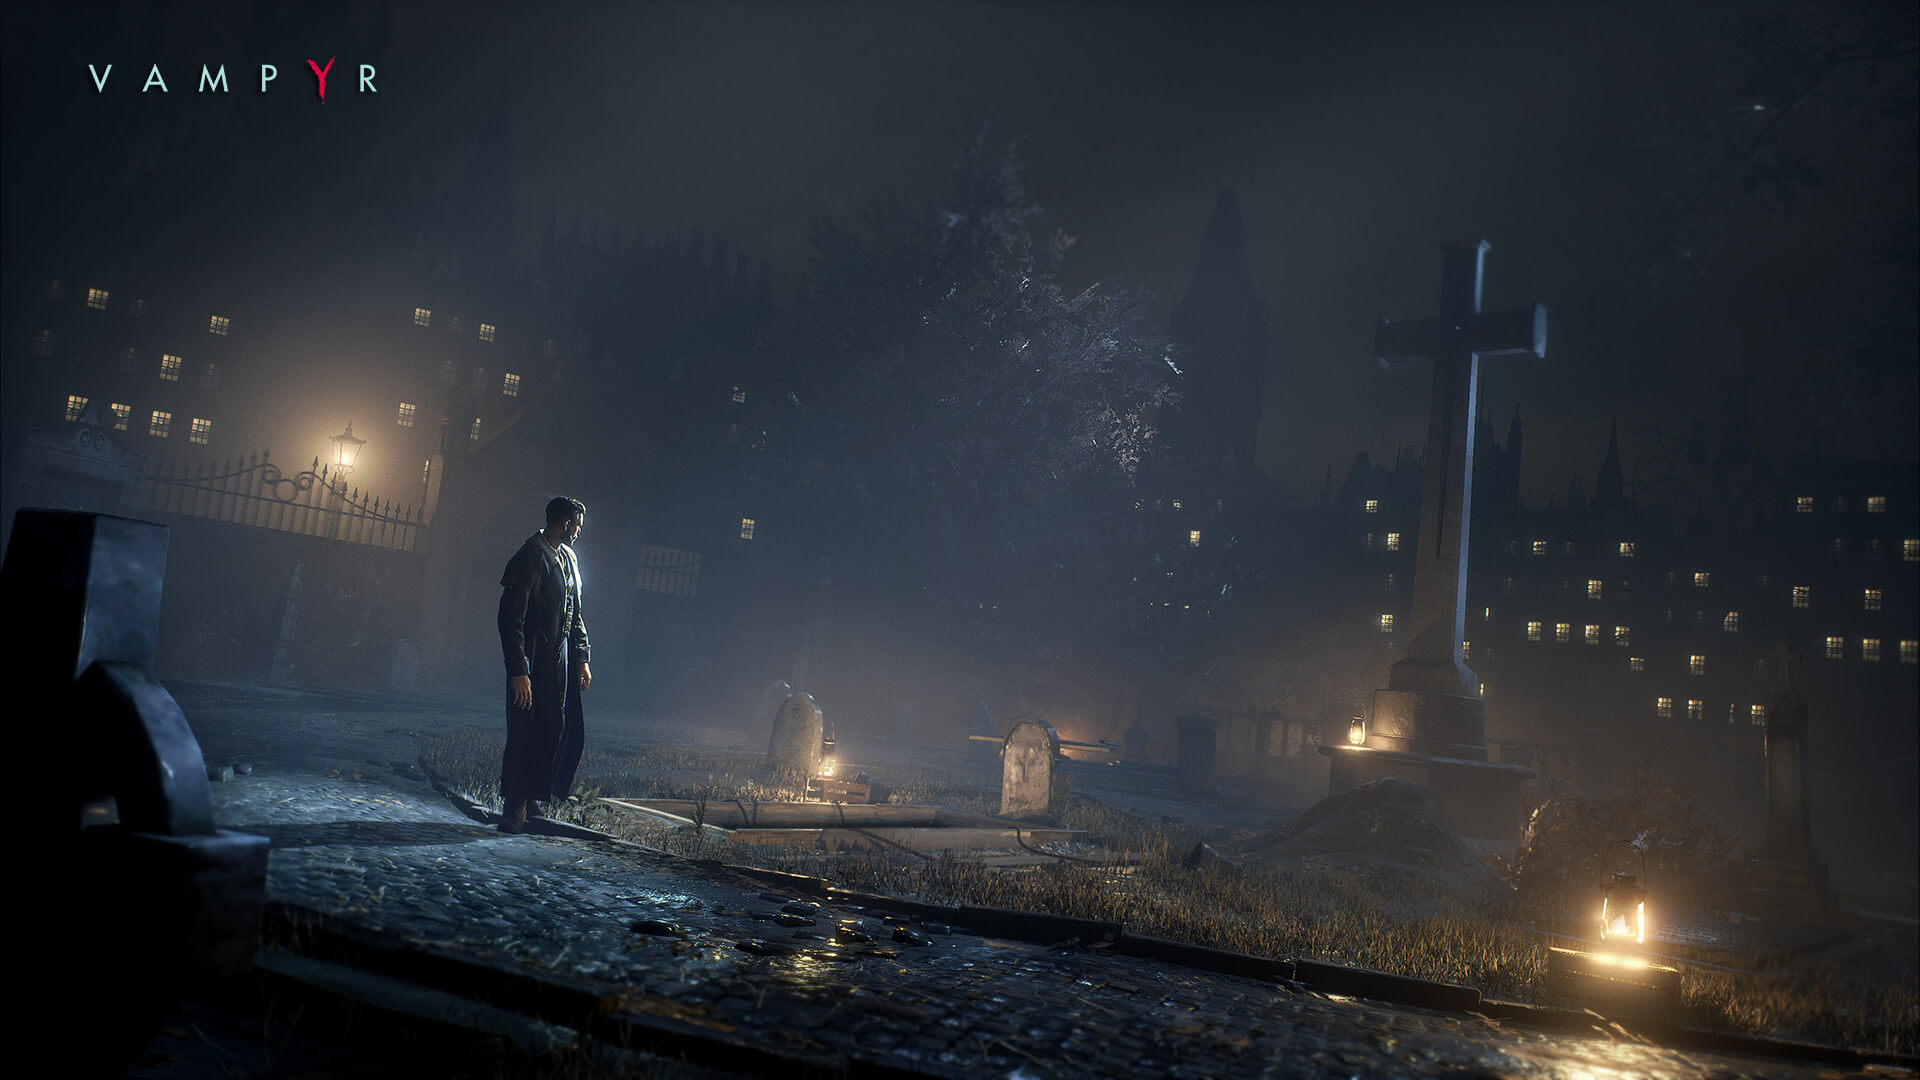 Vampyr review - environments